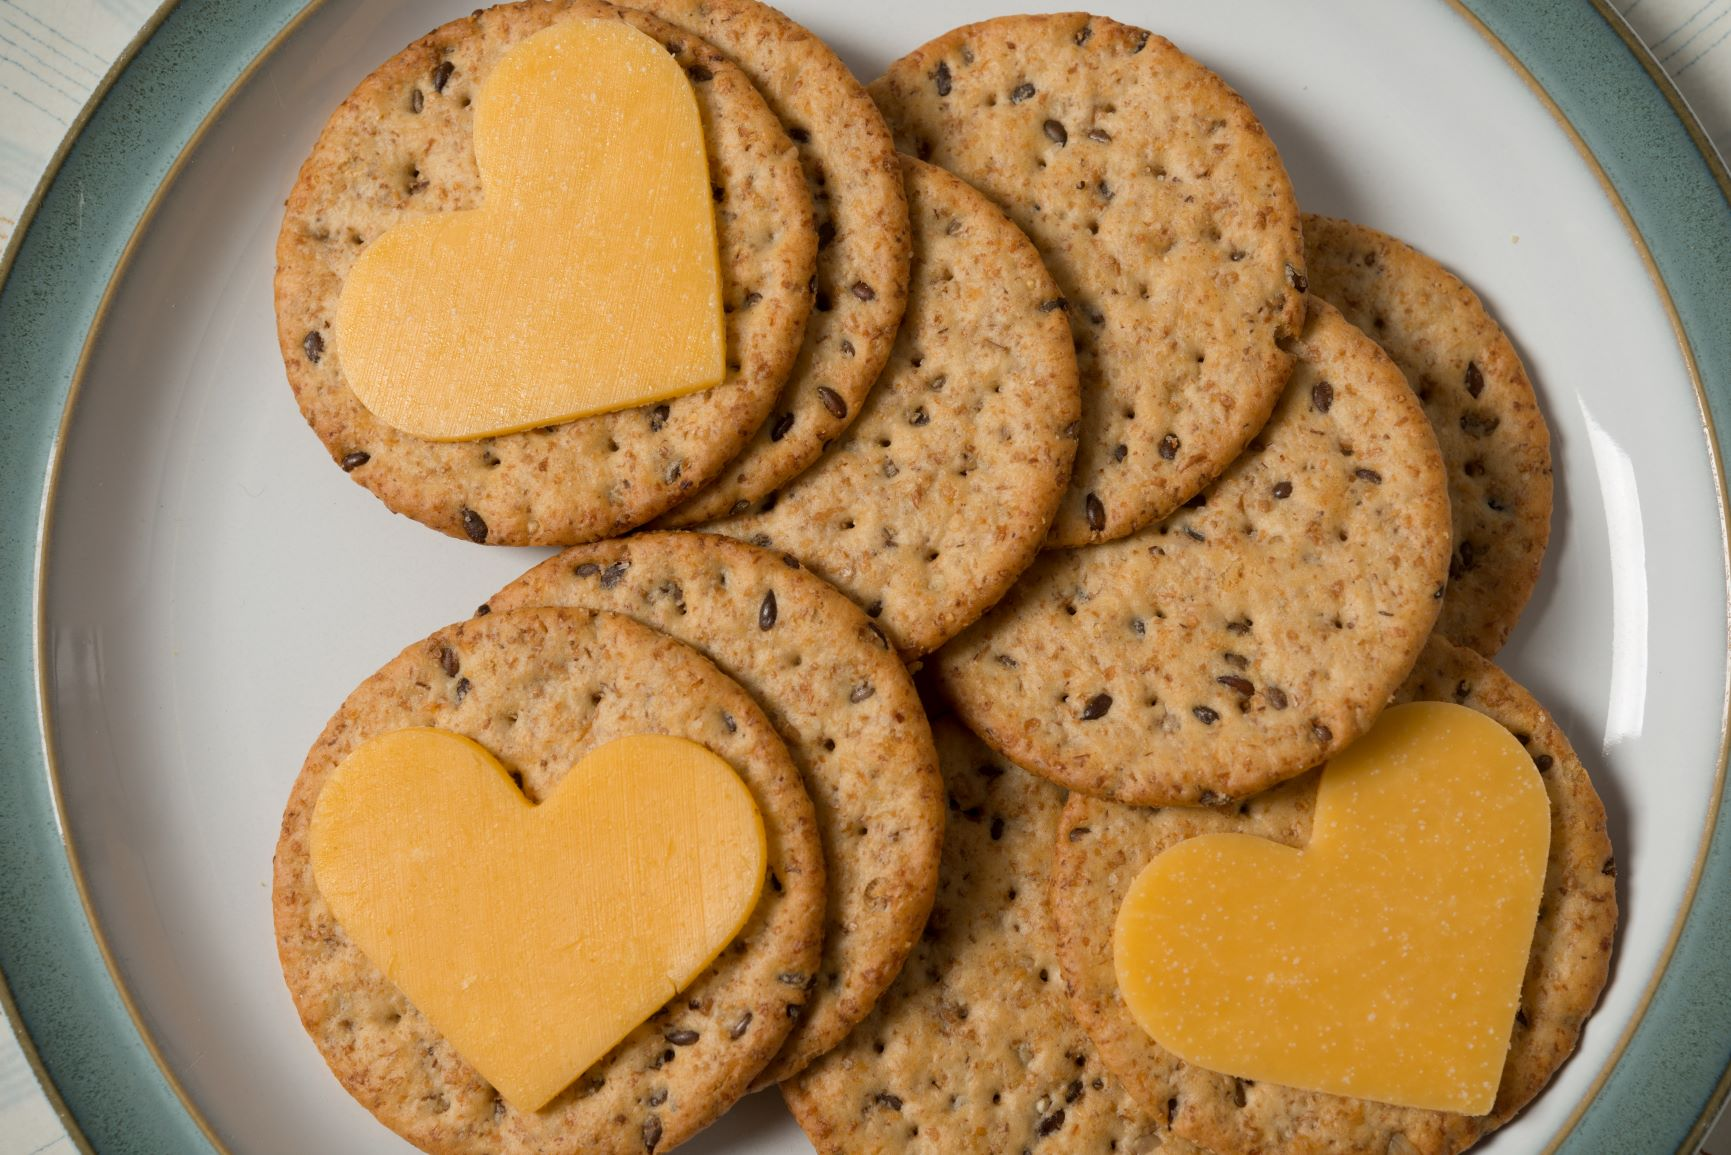 """We eat with our eyes first!"" - Use mini cookie cutters to cut your cheese into cute shapes…. hearts in our example for today because Valentine's Day.What a treat to make your crackers & cheese platters fun, pretty, and DELICIOUS looking!"